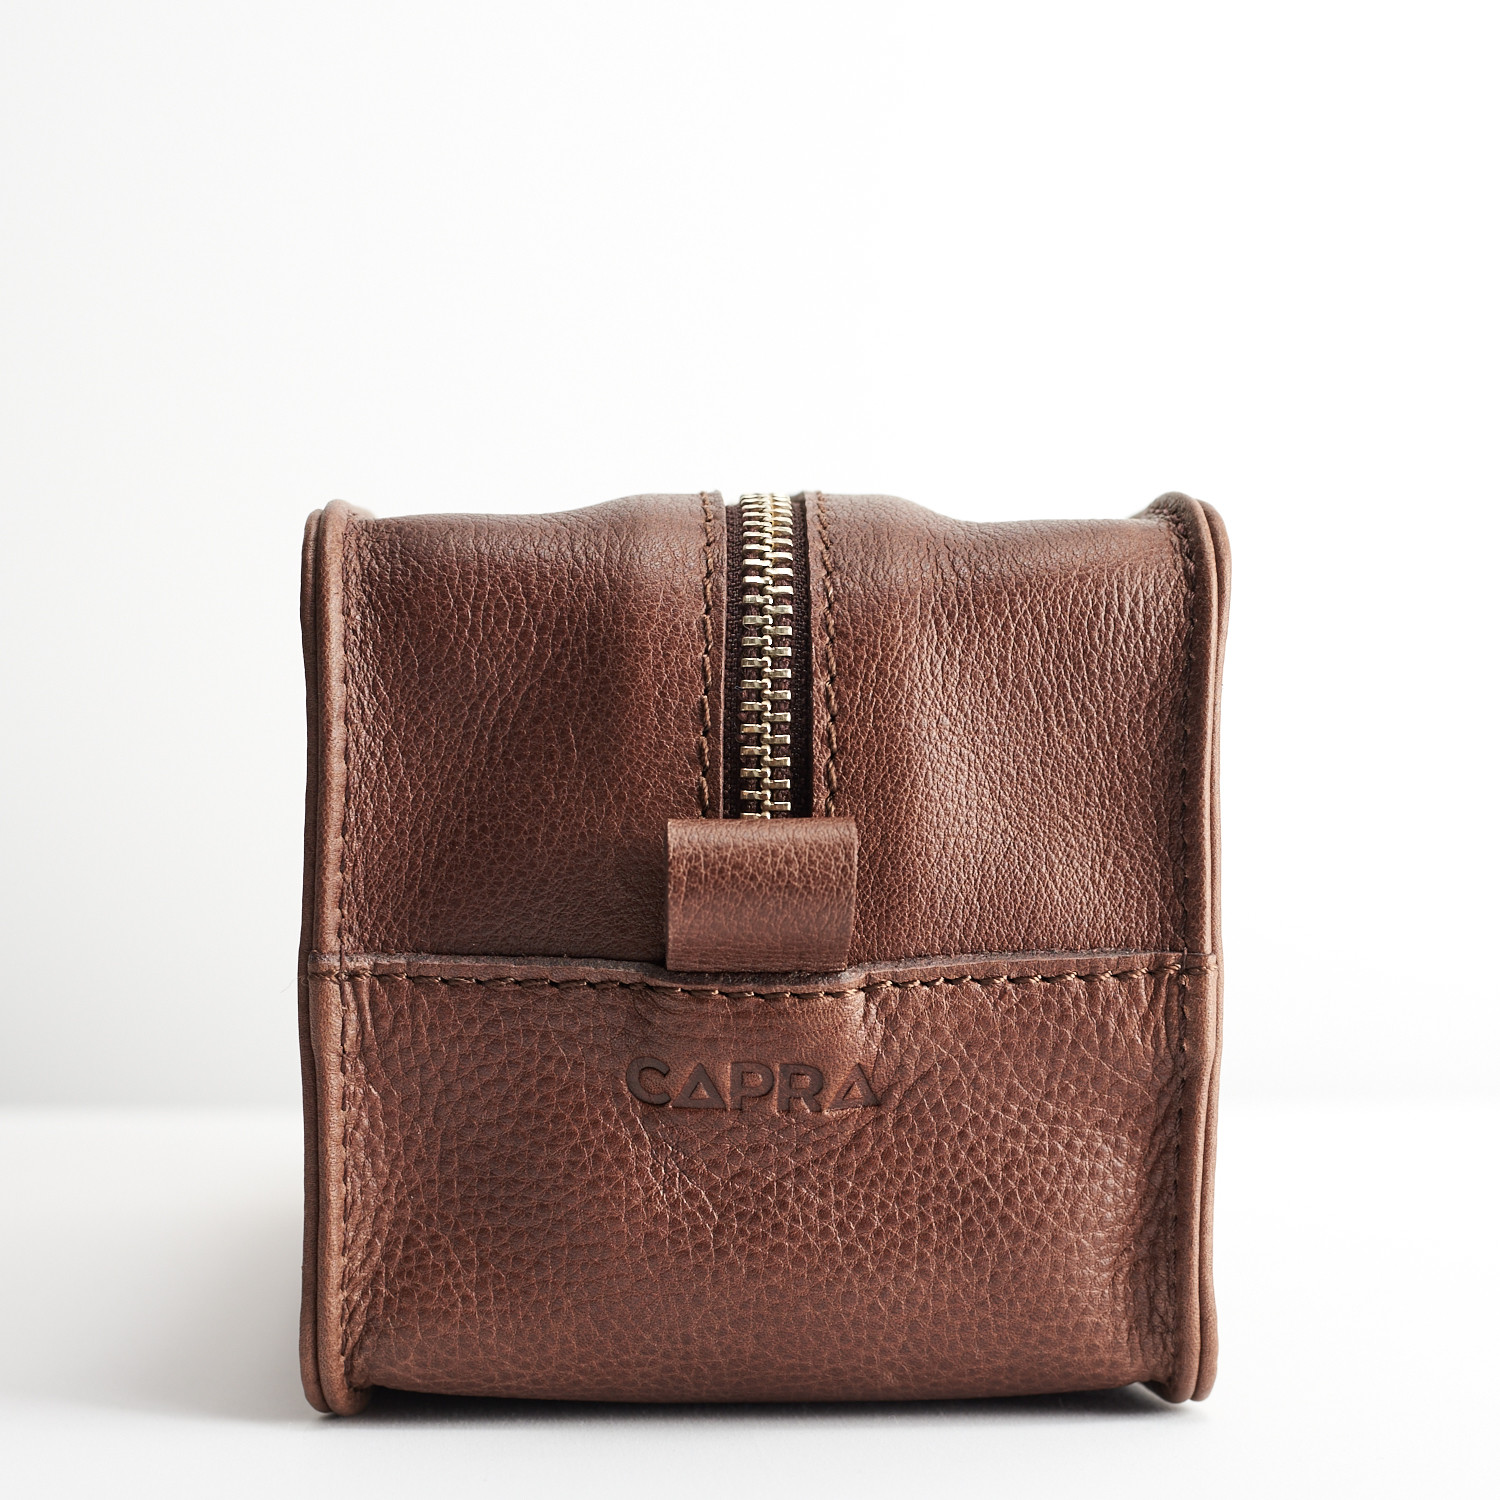 5aa80fb75415 Barber Toiletry Bag (Tobacco) - Capra Leather - Touch of Modern